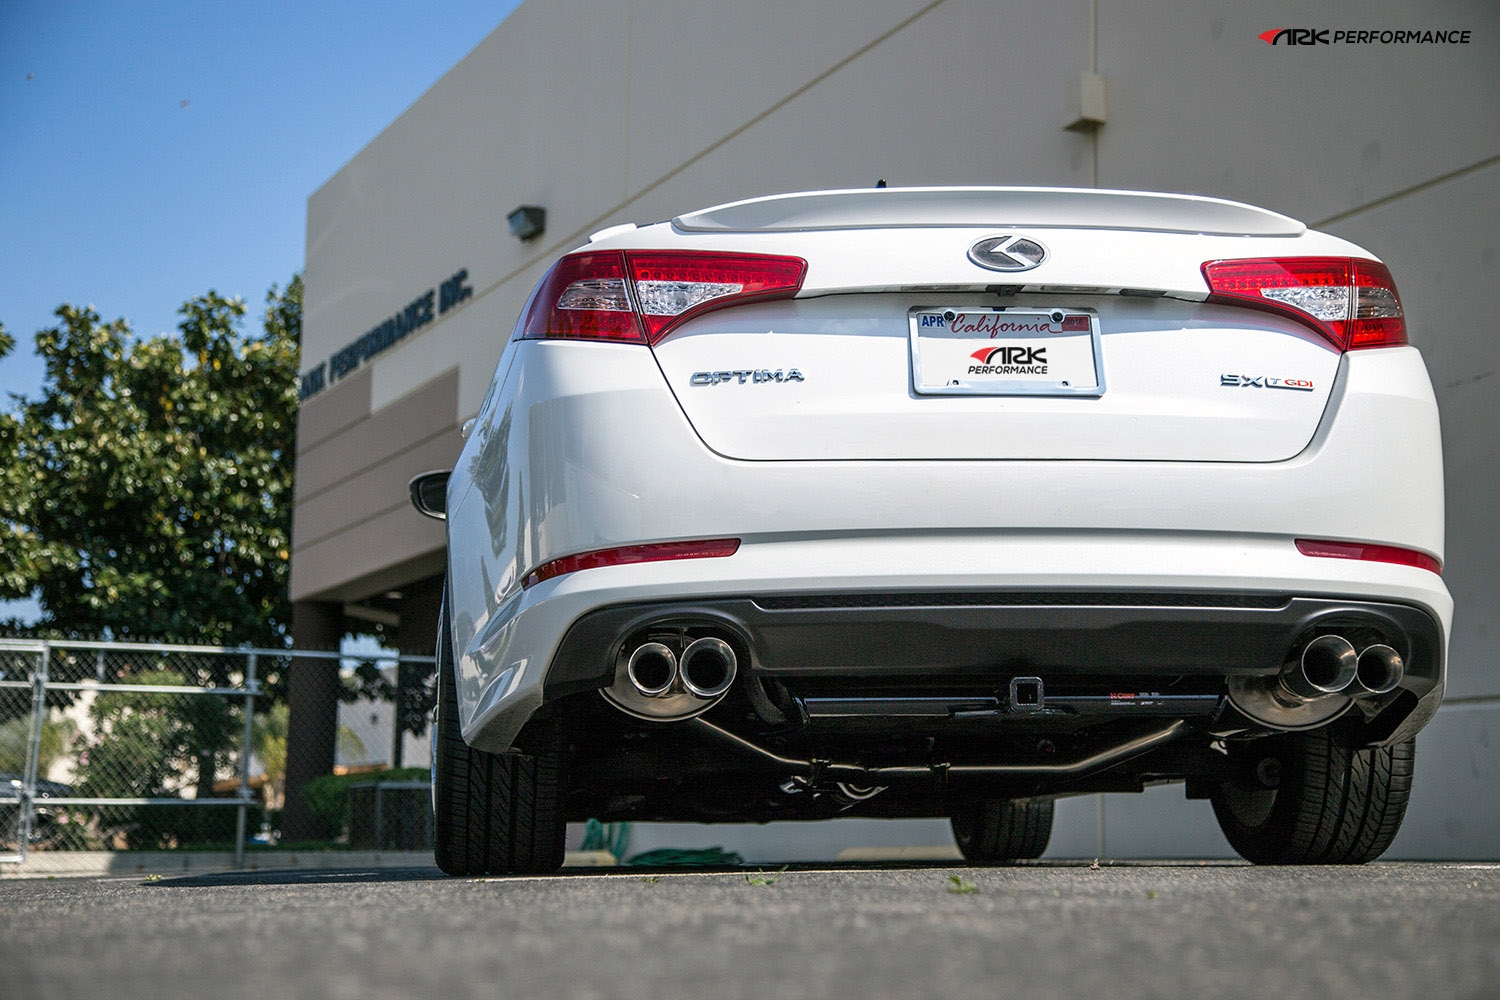 ark performance stainless steel dt s cat back exhaust system 2 25 to 2 5in pipe w 3 5 2 5 polished dual tip dual exit kia optima k5 11 13